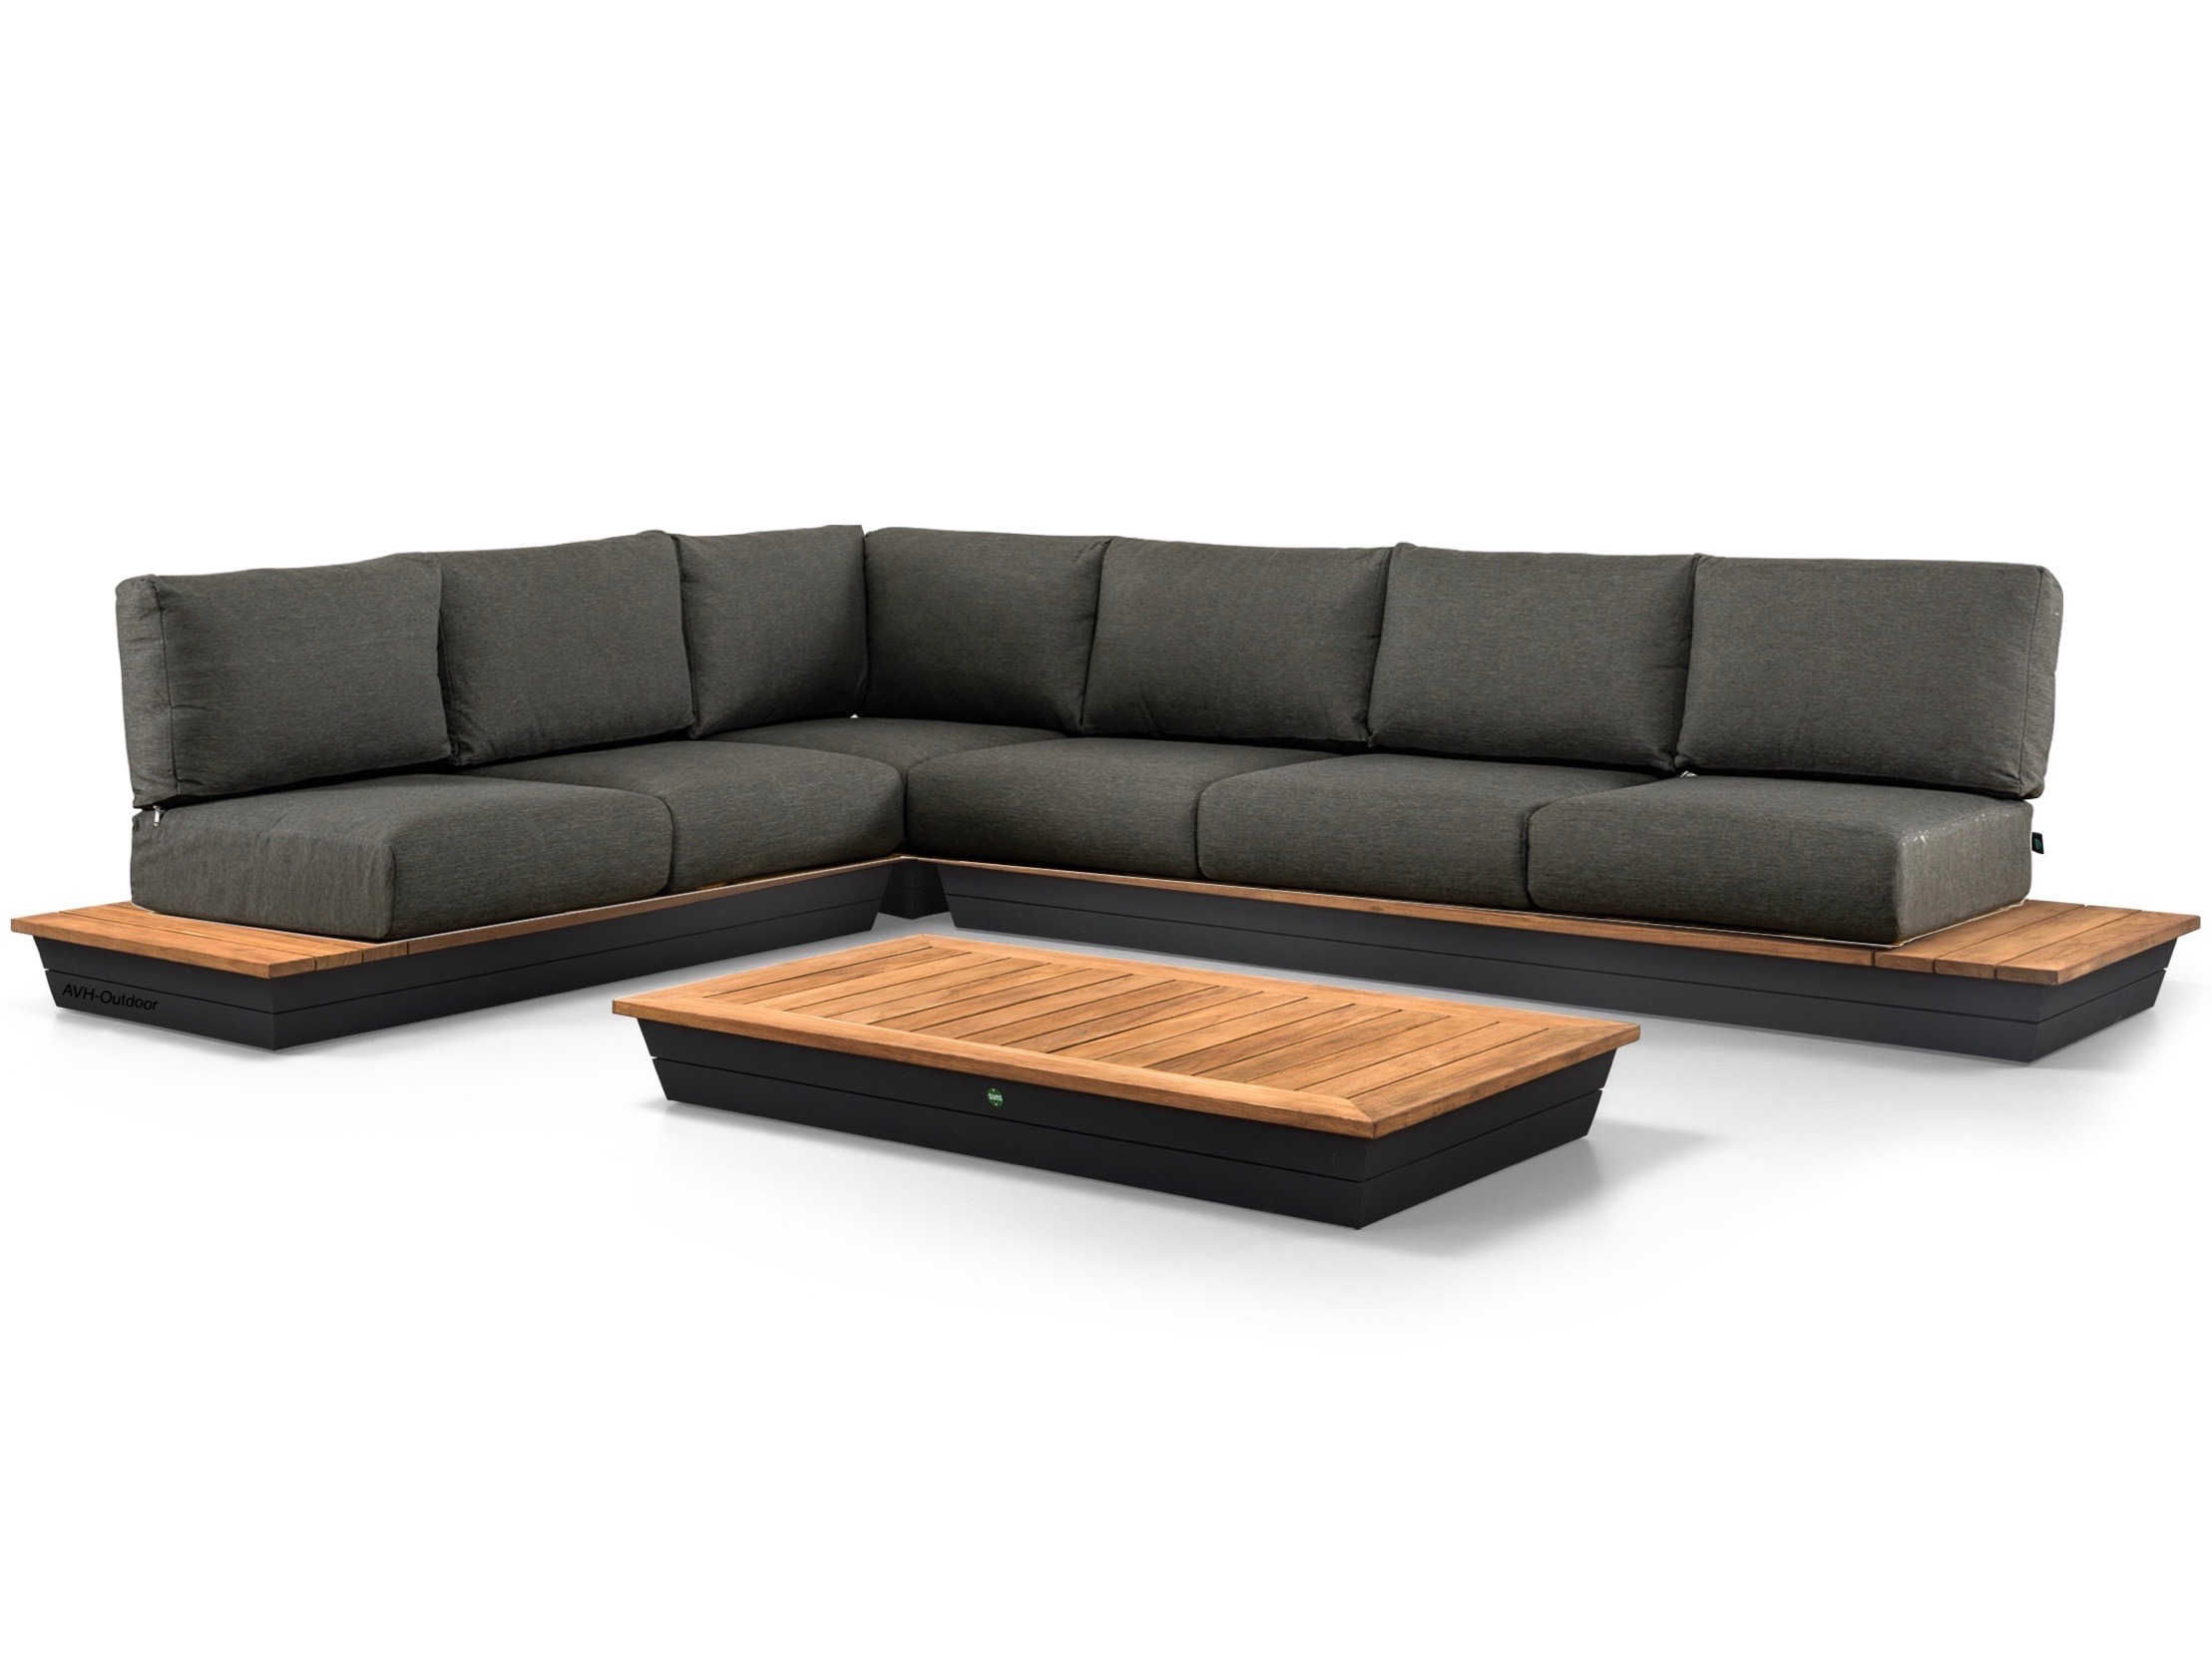 Design hoek loungeset